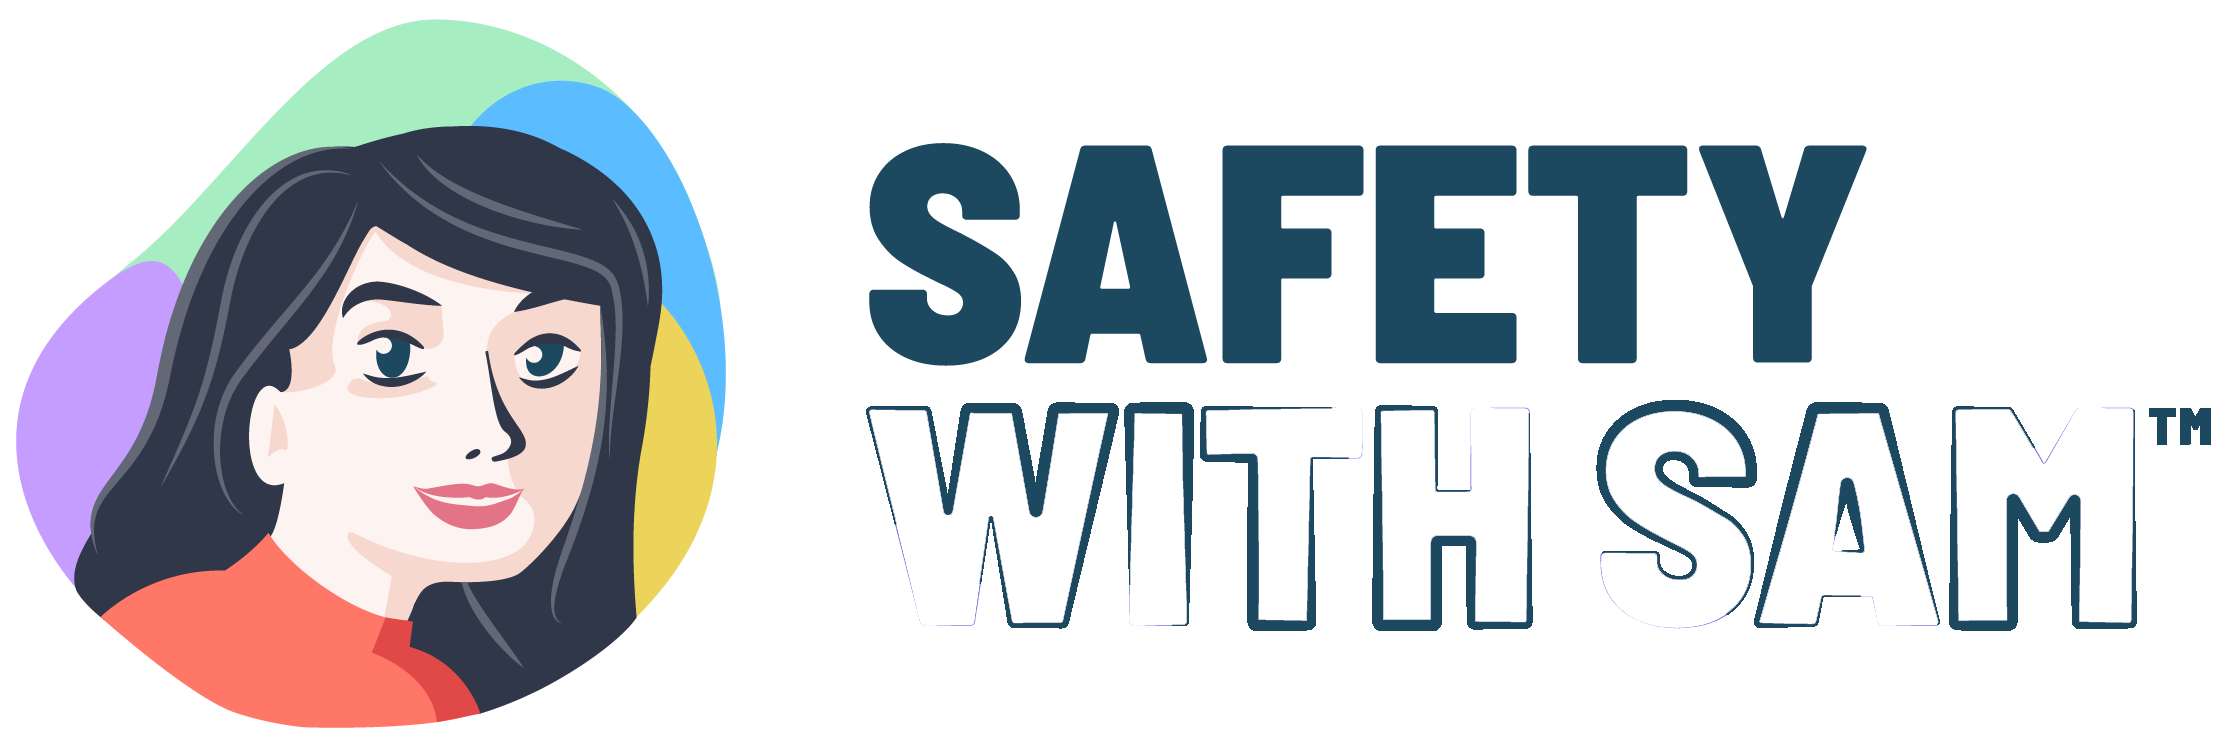 Safety with Sam